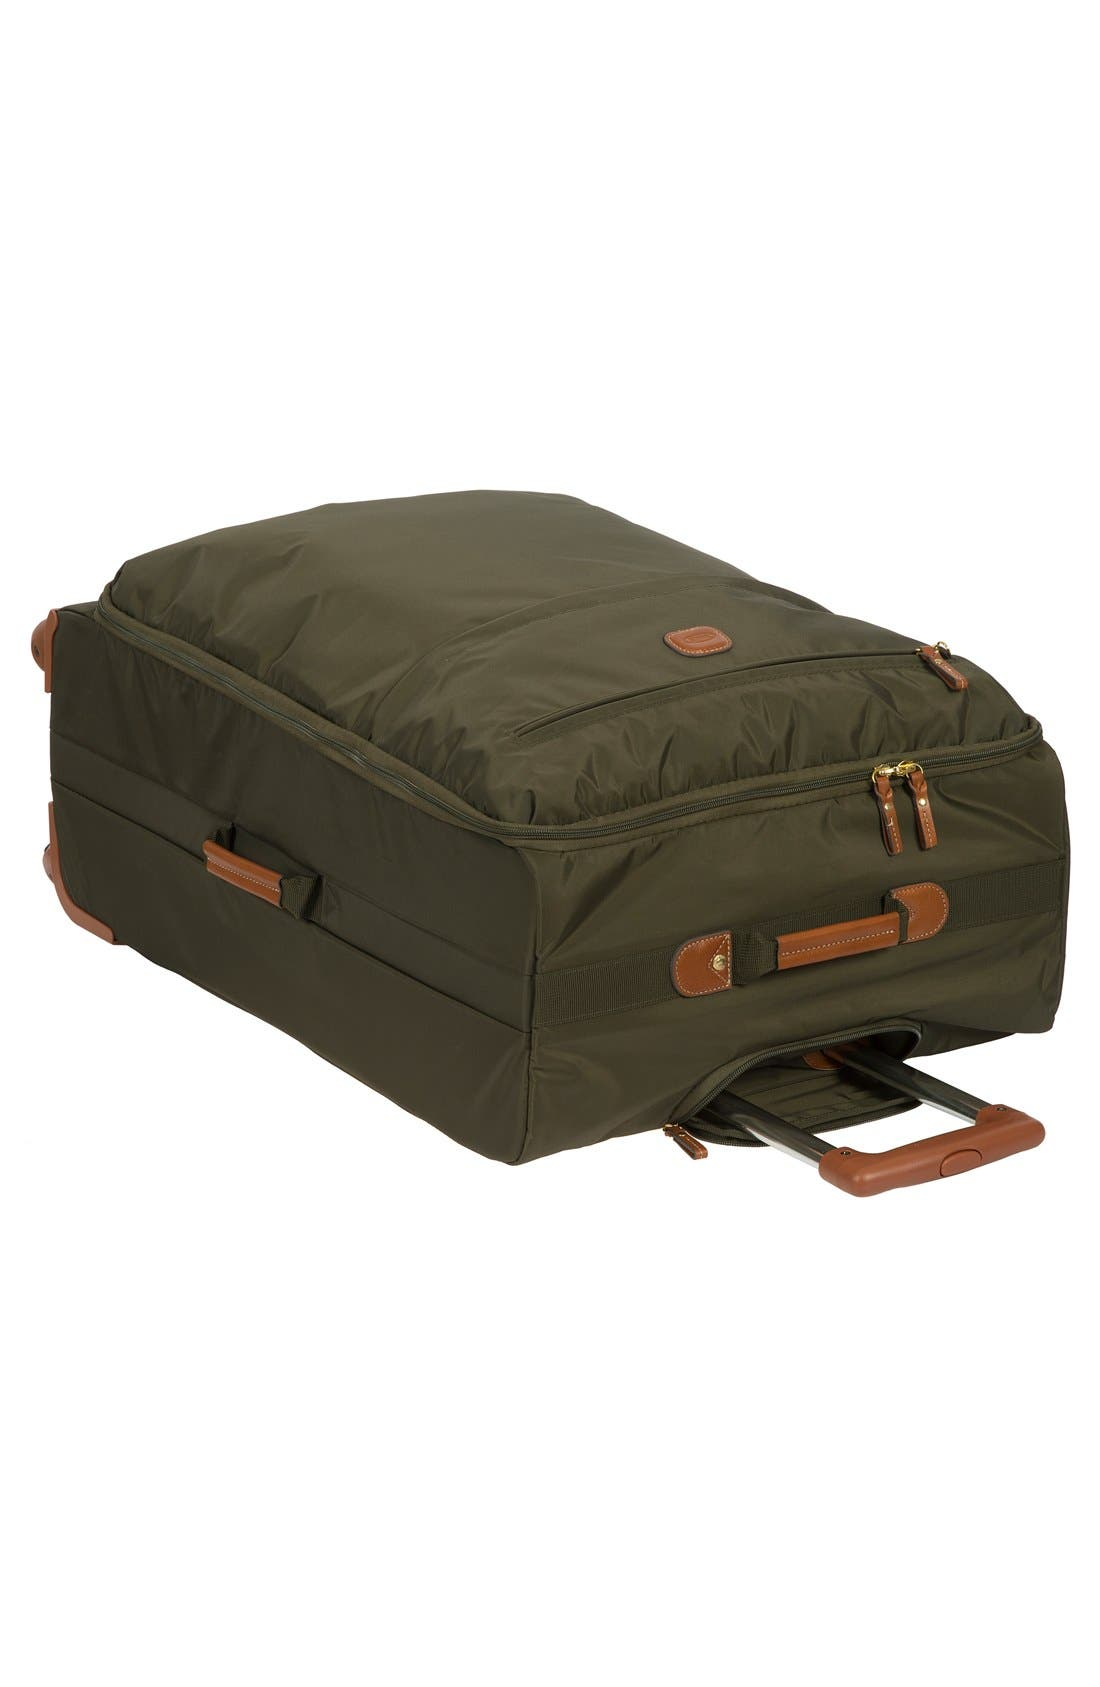 X-Bag 30-Inch Spinner Suitcase,                             Alternate thumbnail 6, color,                             Olive